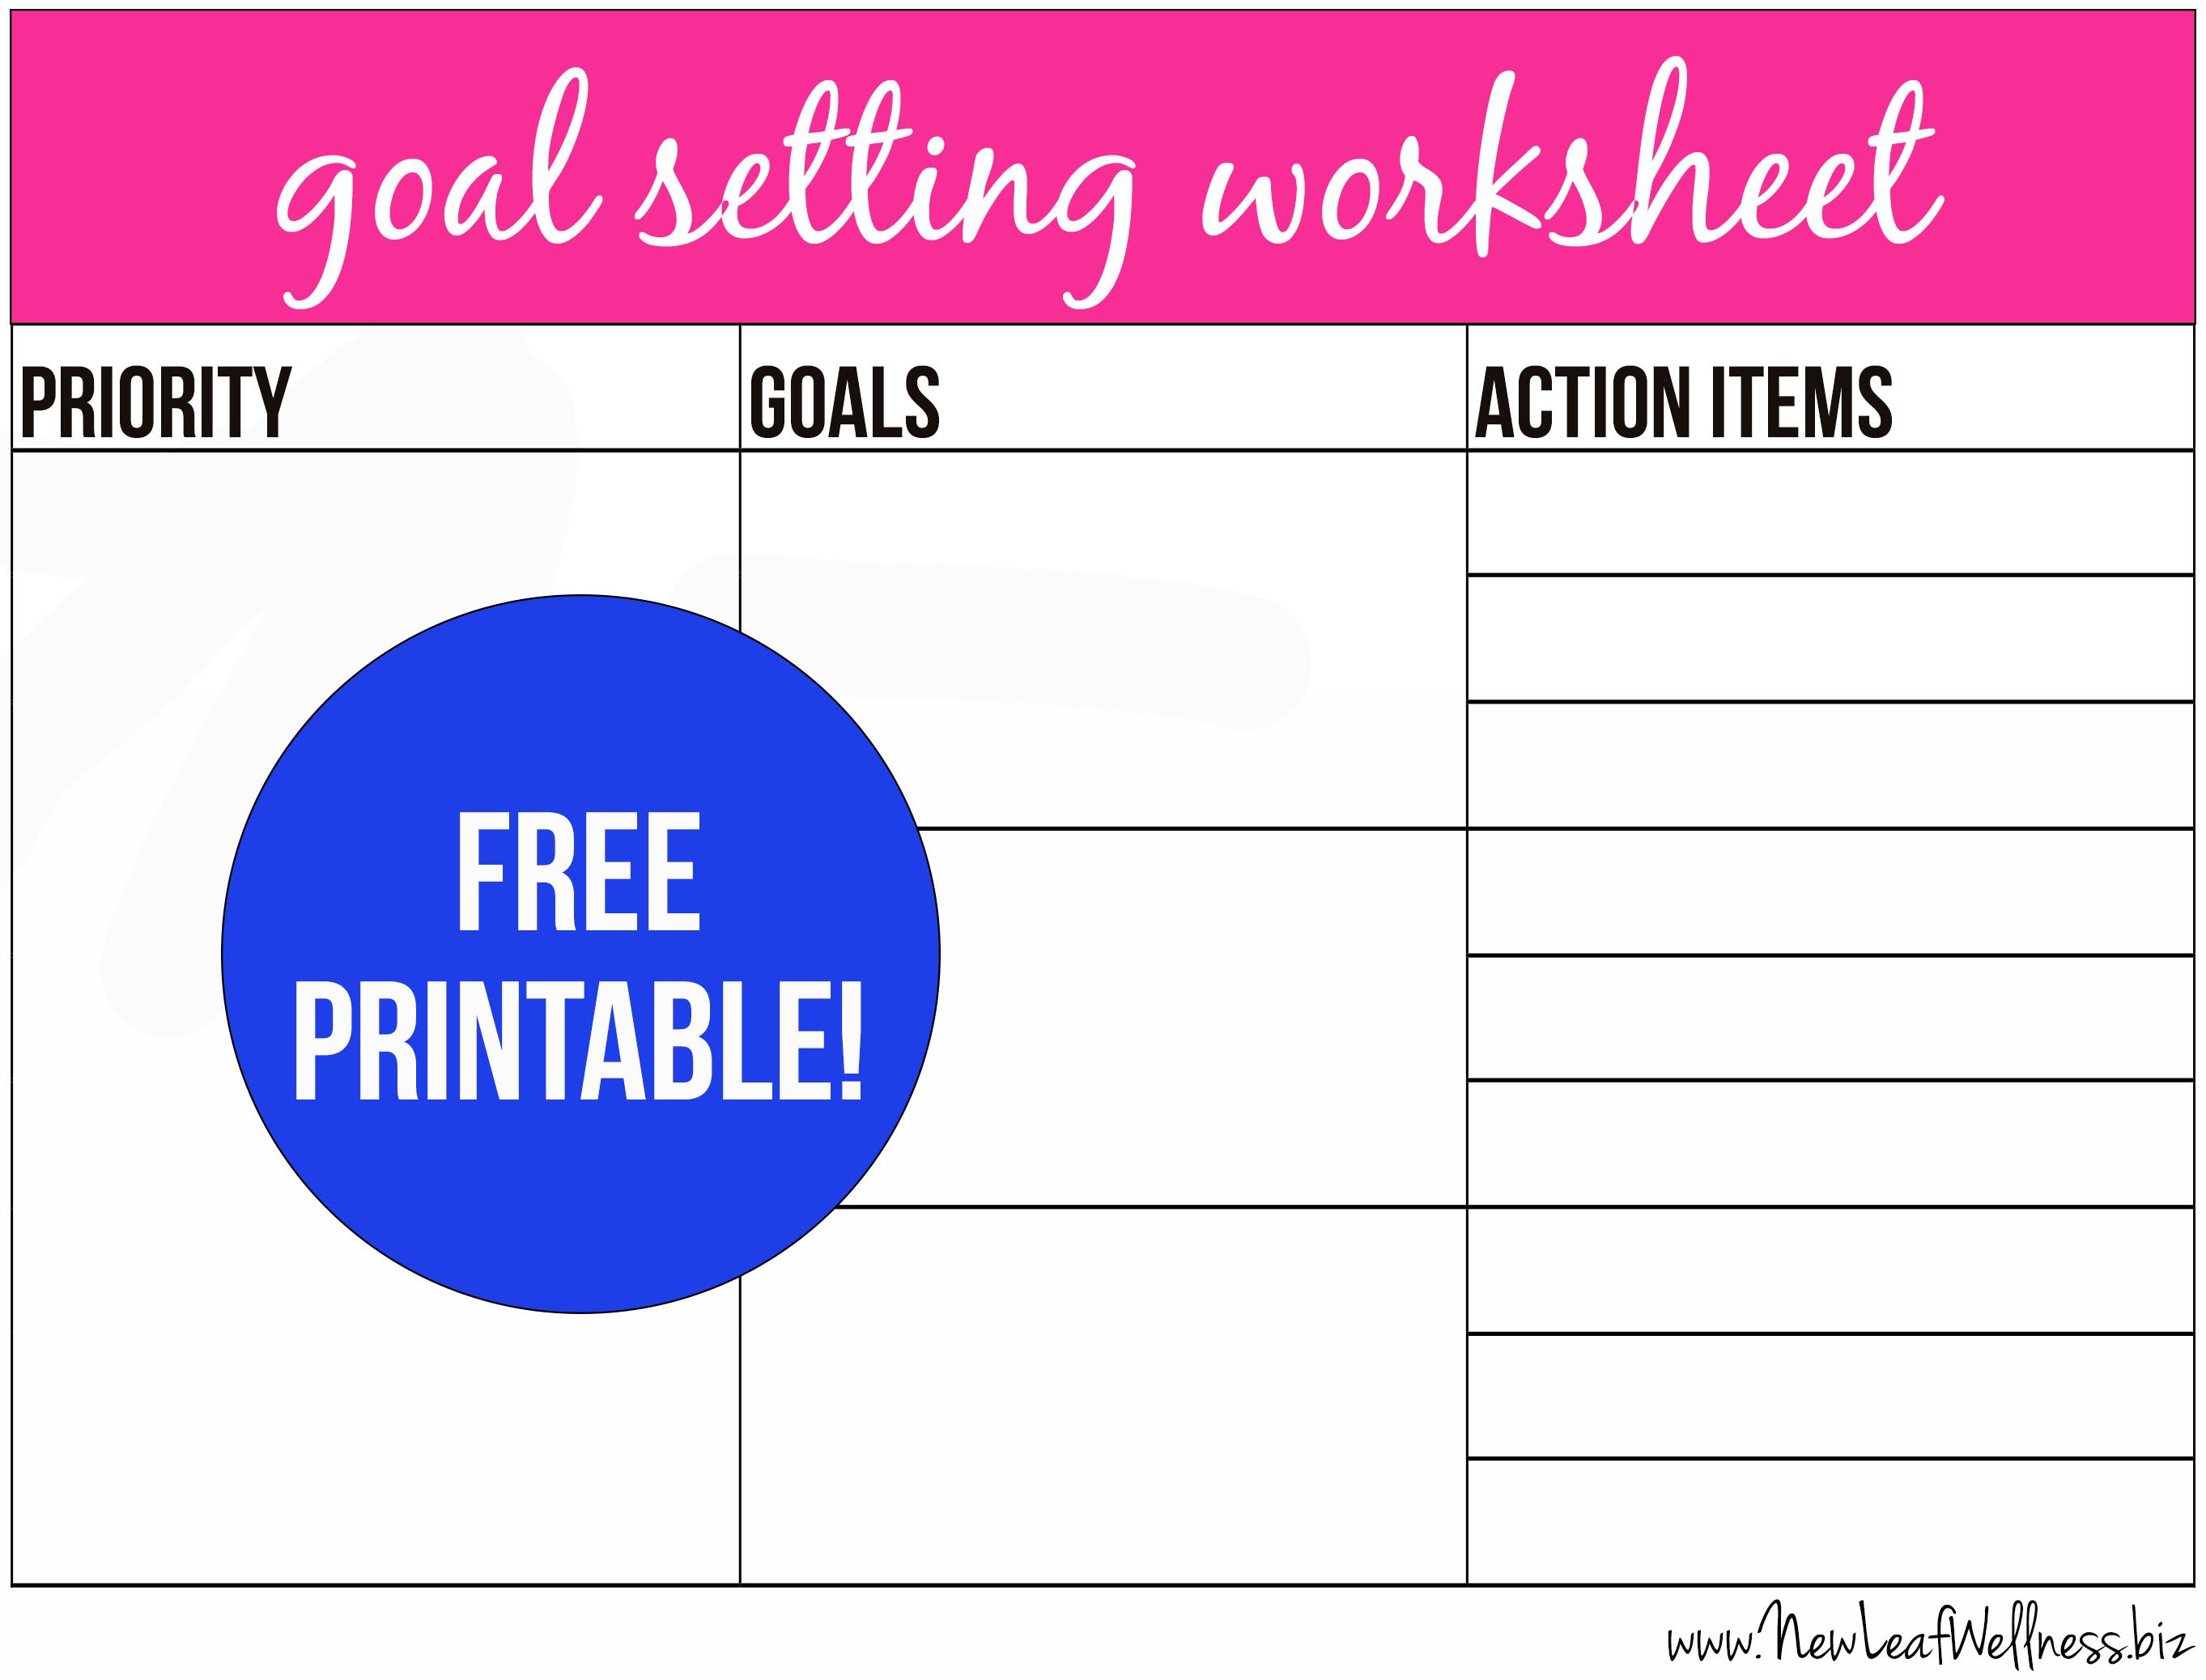 free printable goal setting worksheet and instructions my husband and i filled this out and it. Black Bedroom Furniture Sets. Home Design Ideas